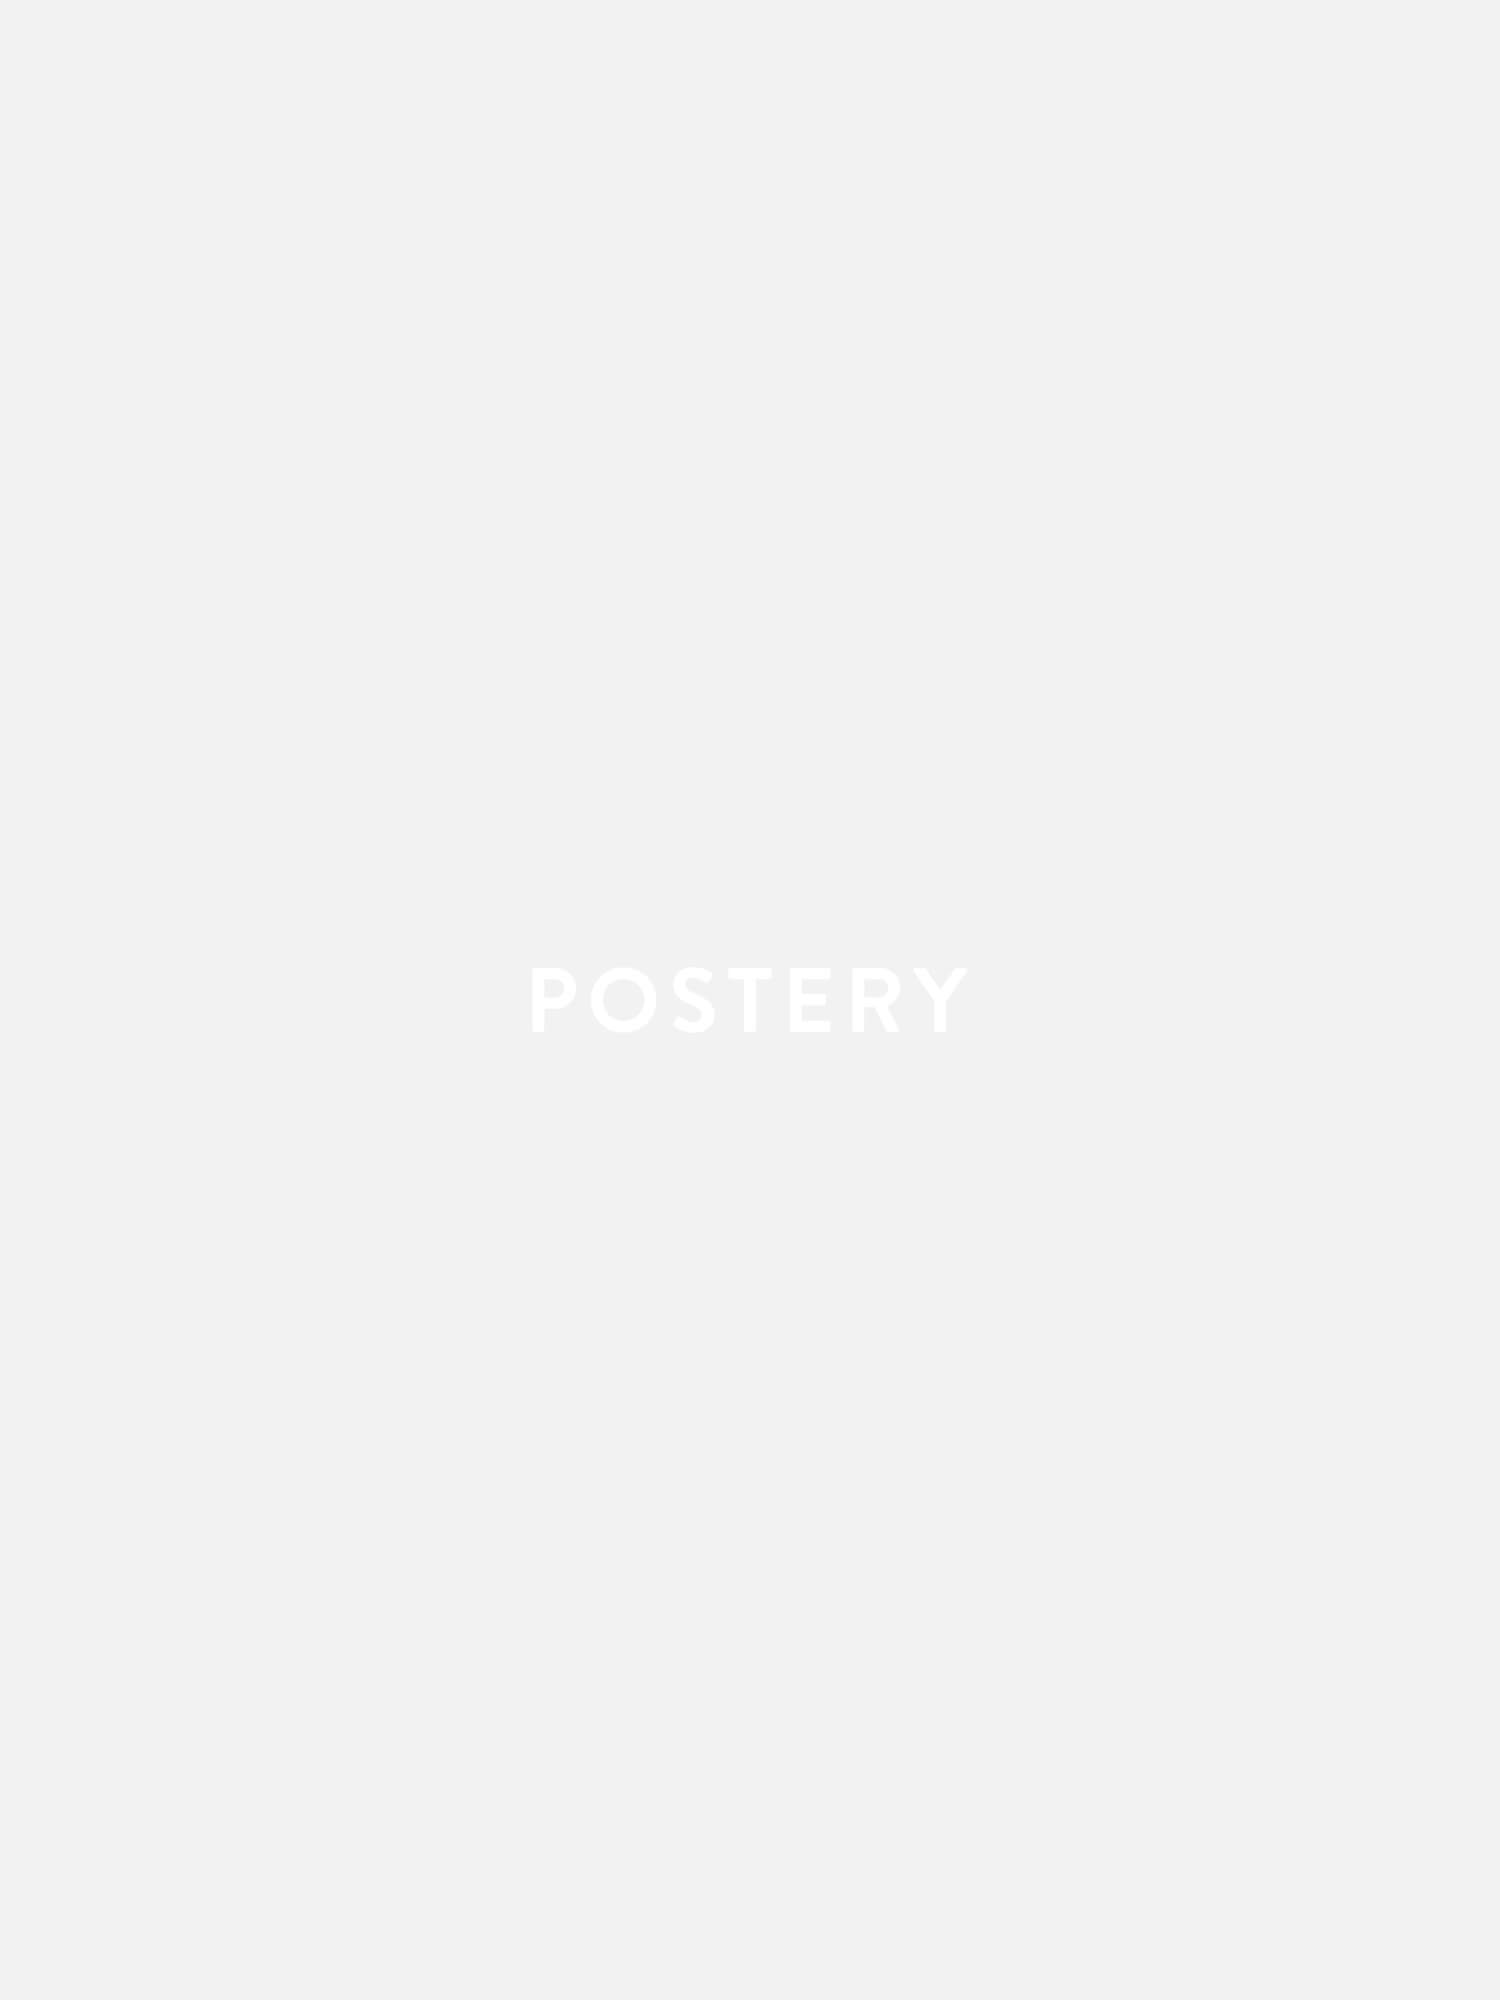 Astronaut Dream Poster